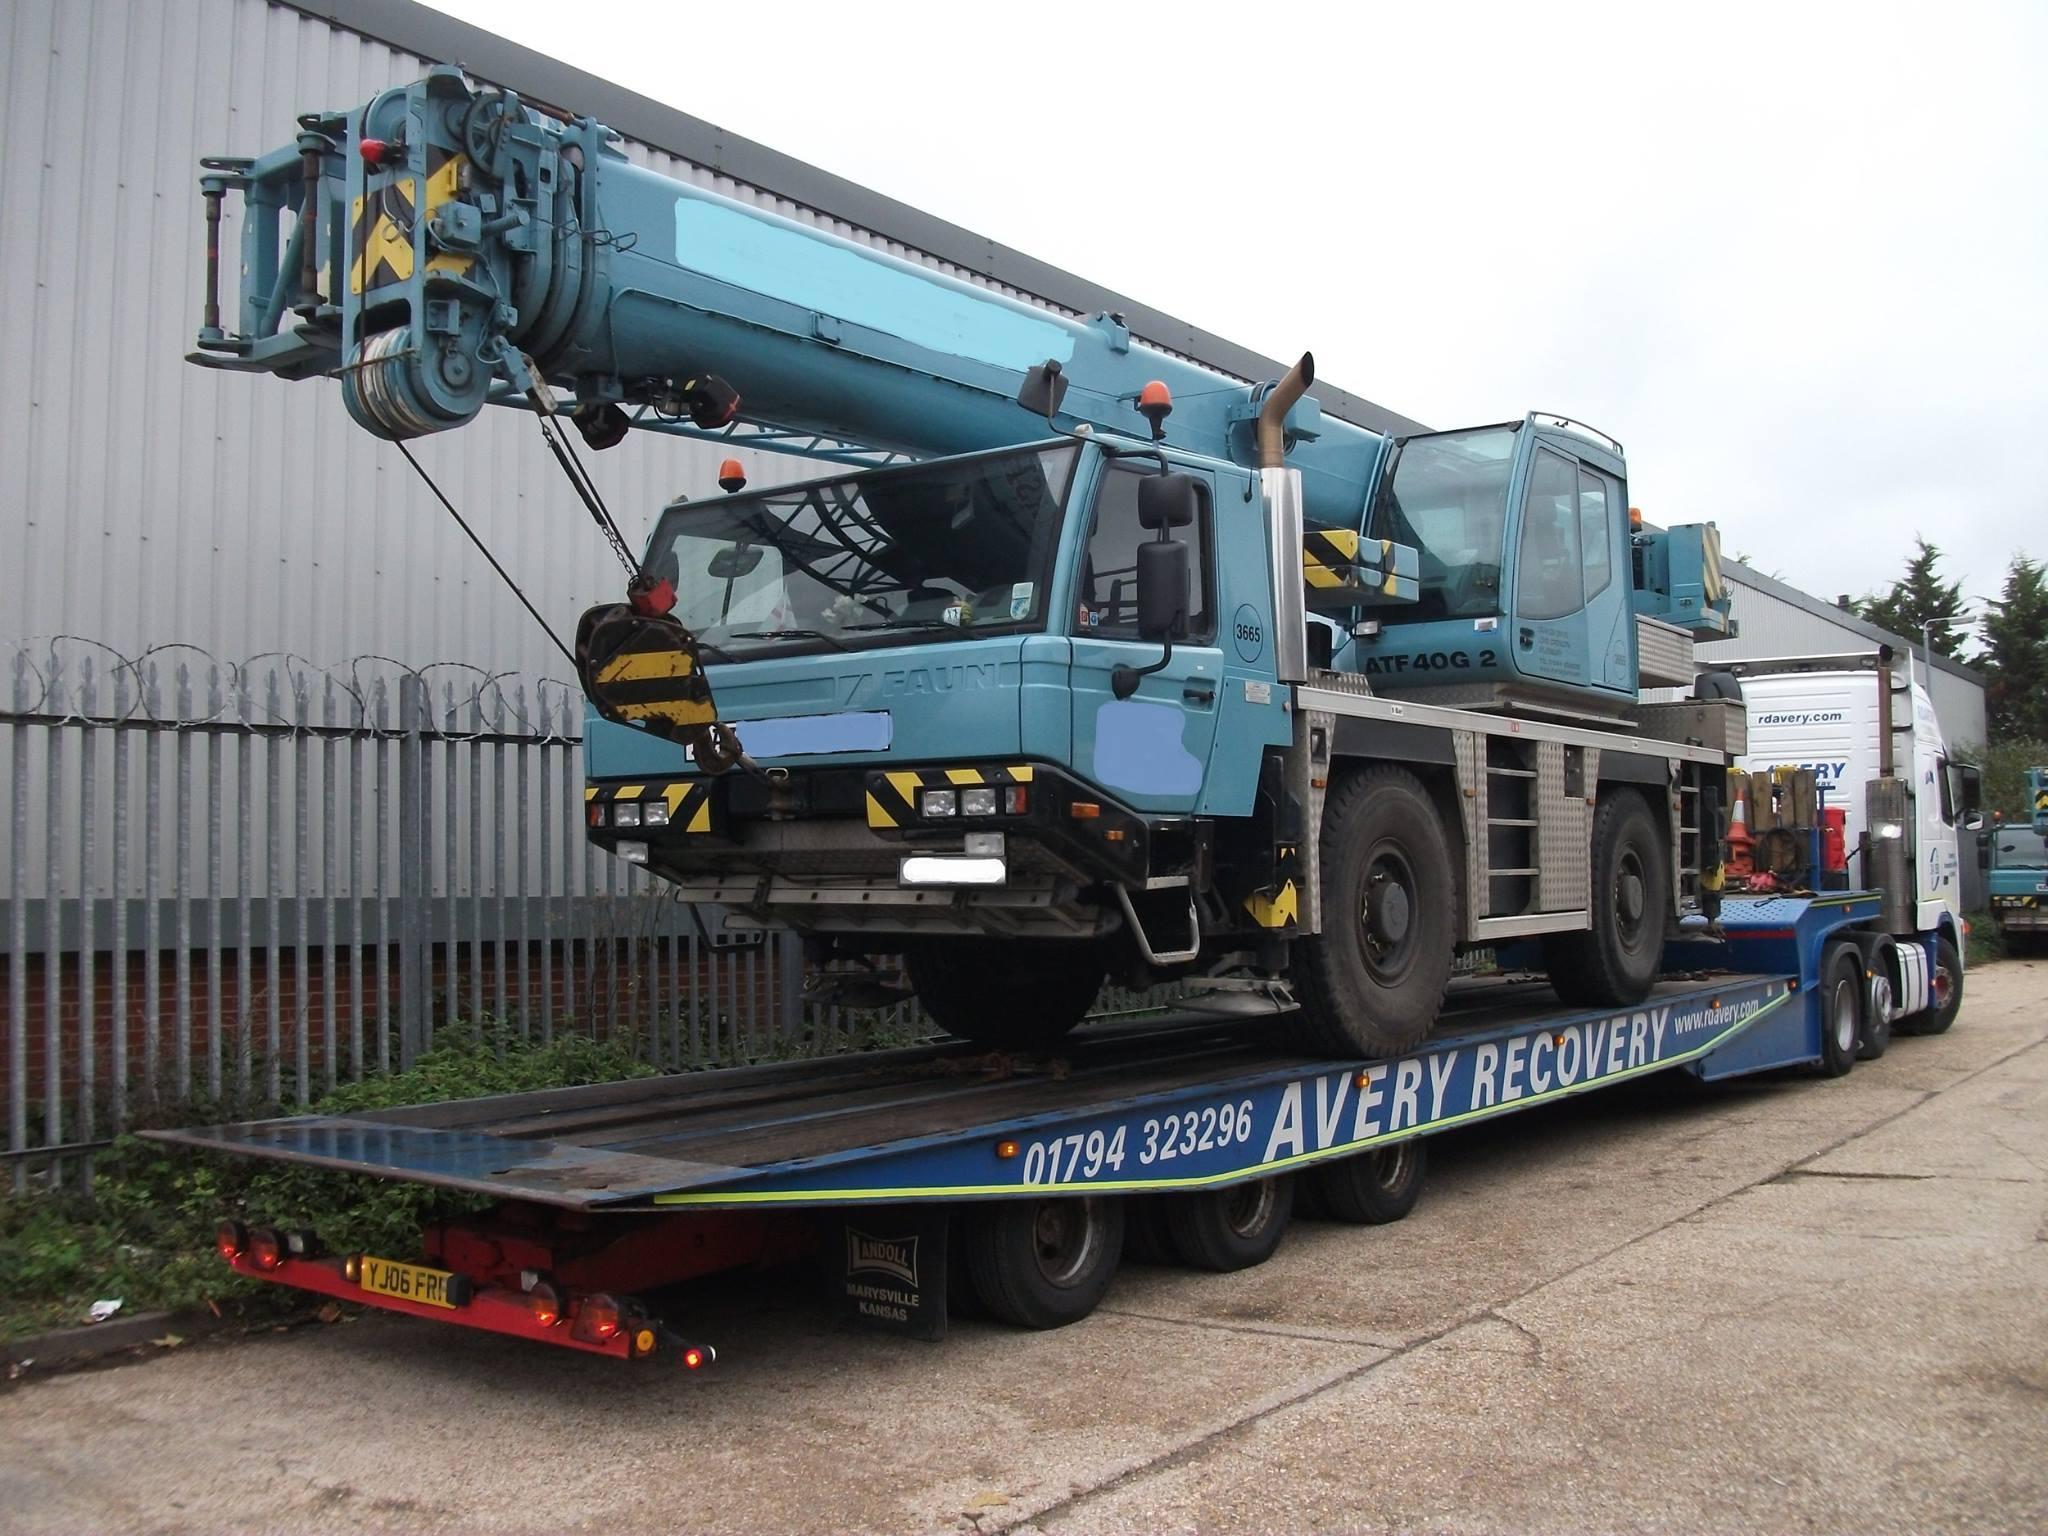 Heavy Vehicle Recovery SOUTHAMPTON - We regularly recover heavy goods vehicles including lorries, plant, buses and coaches from road or off-road situations in the Southampton area.